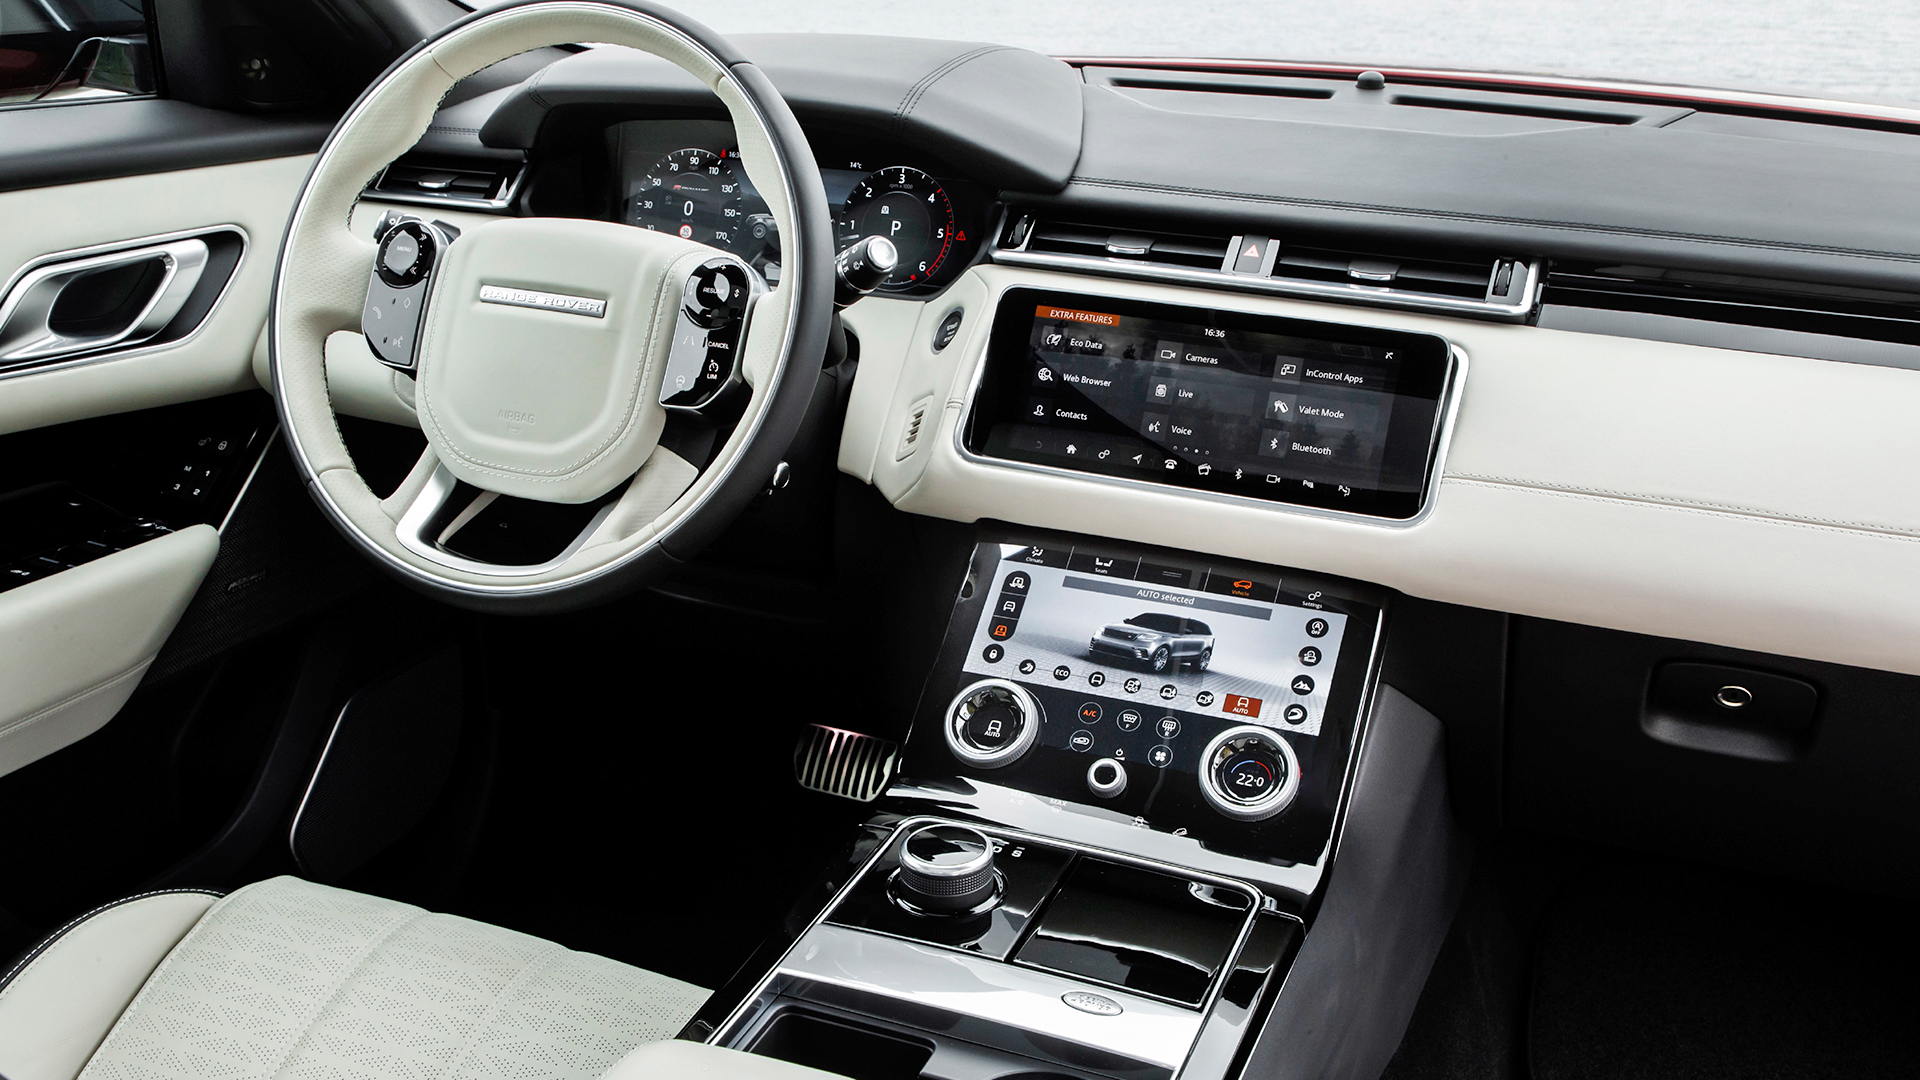 Matte White Land Rover >> Land Rover Range Rover Velar 2017 - Price, Mileage, Reviews, Specification, Gallery - Overdrive